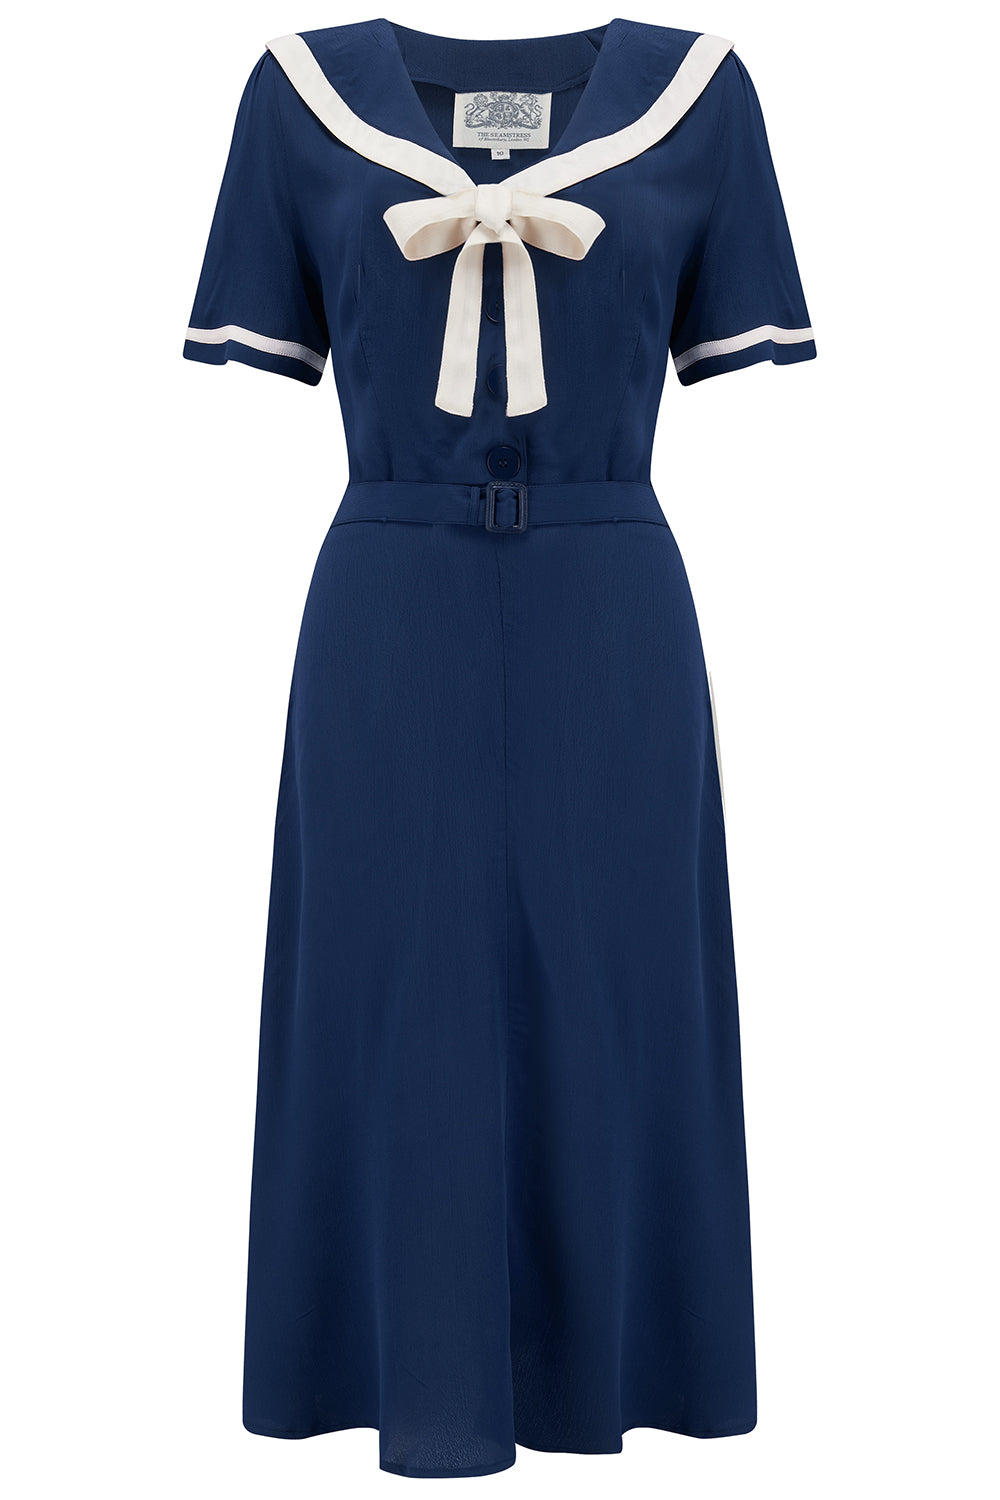 1940s Dress Styles Patti 1940s Nautical Sailor Dress in Navy Authentic true vintage style £79.00 AT vintagedancer.com